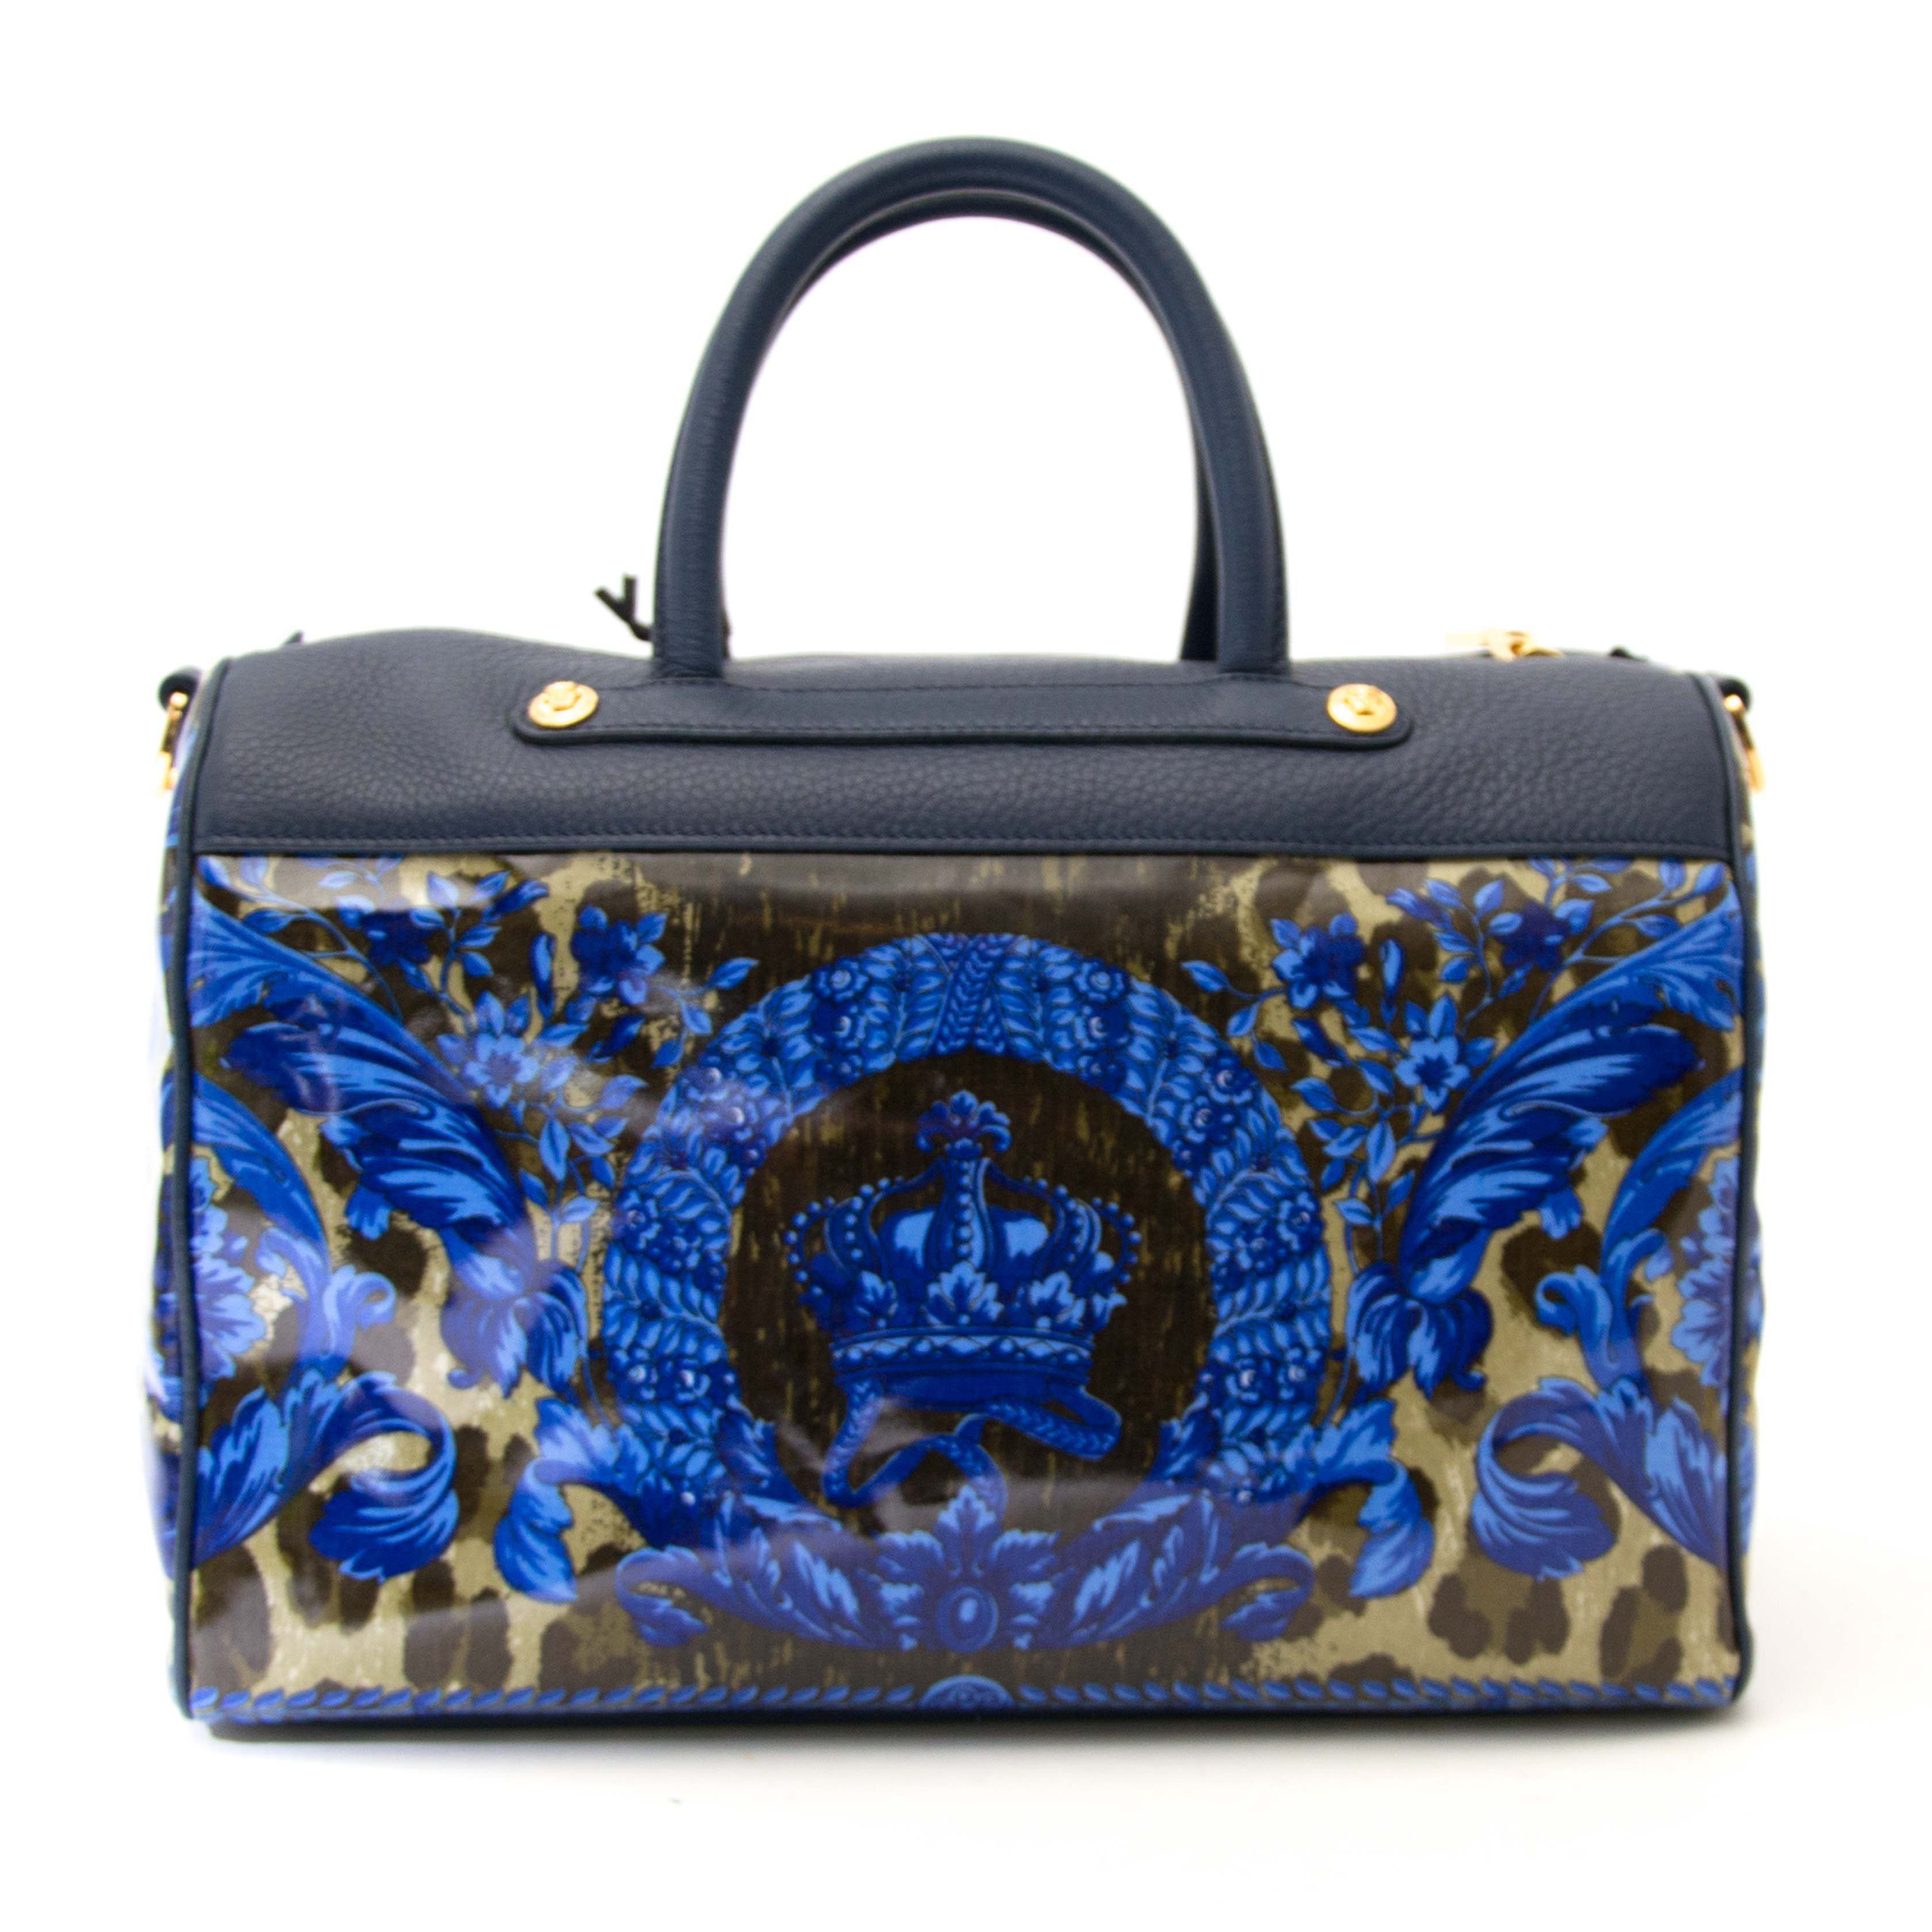 Are you looking for an authentic Never Used Versace Floral Boston Bag?